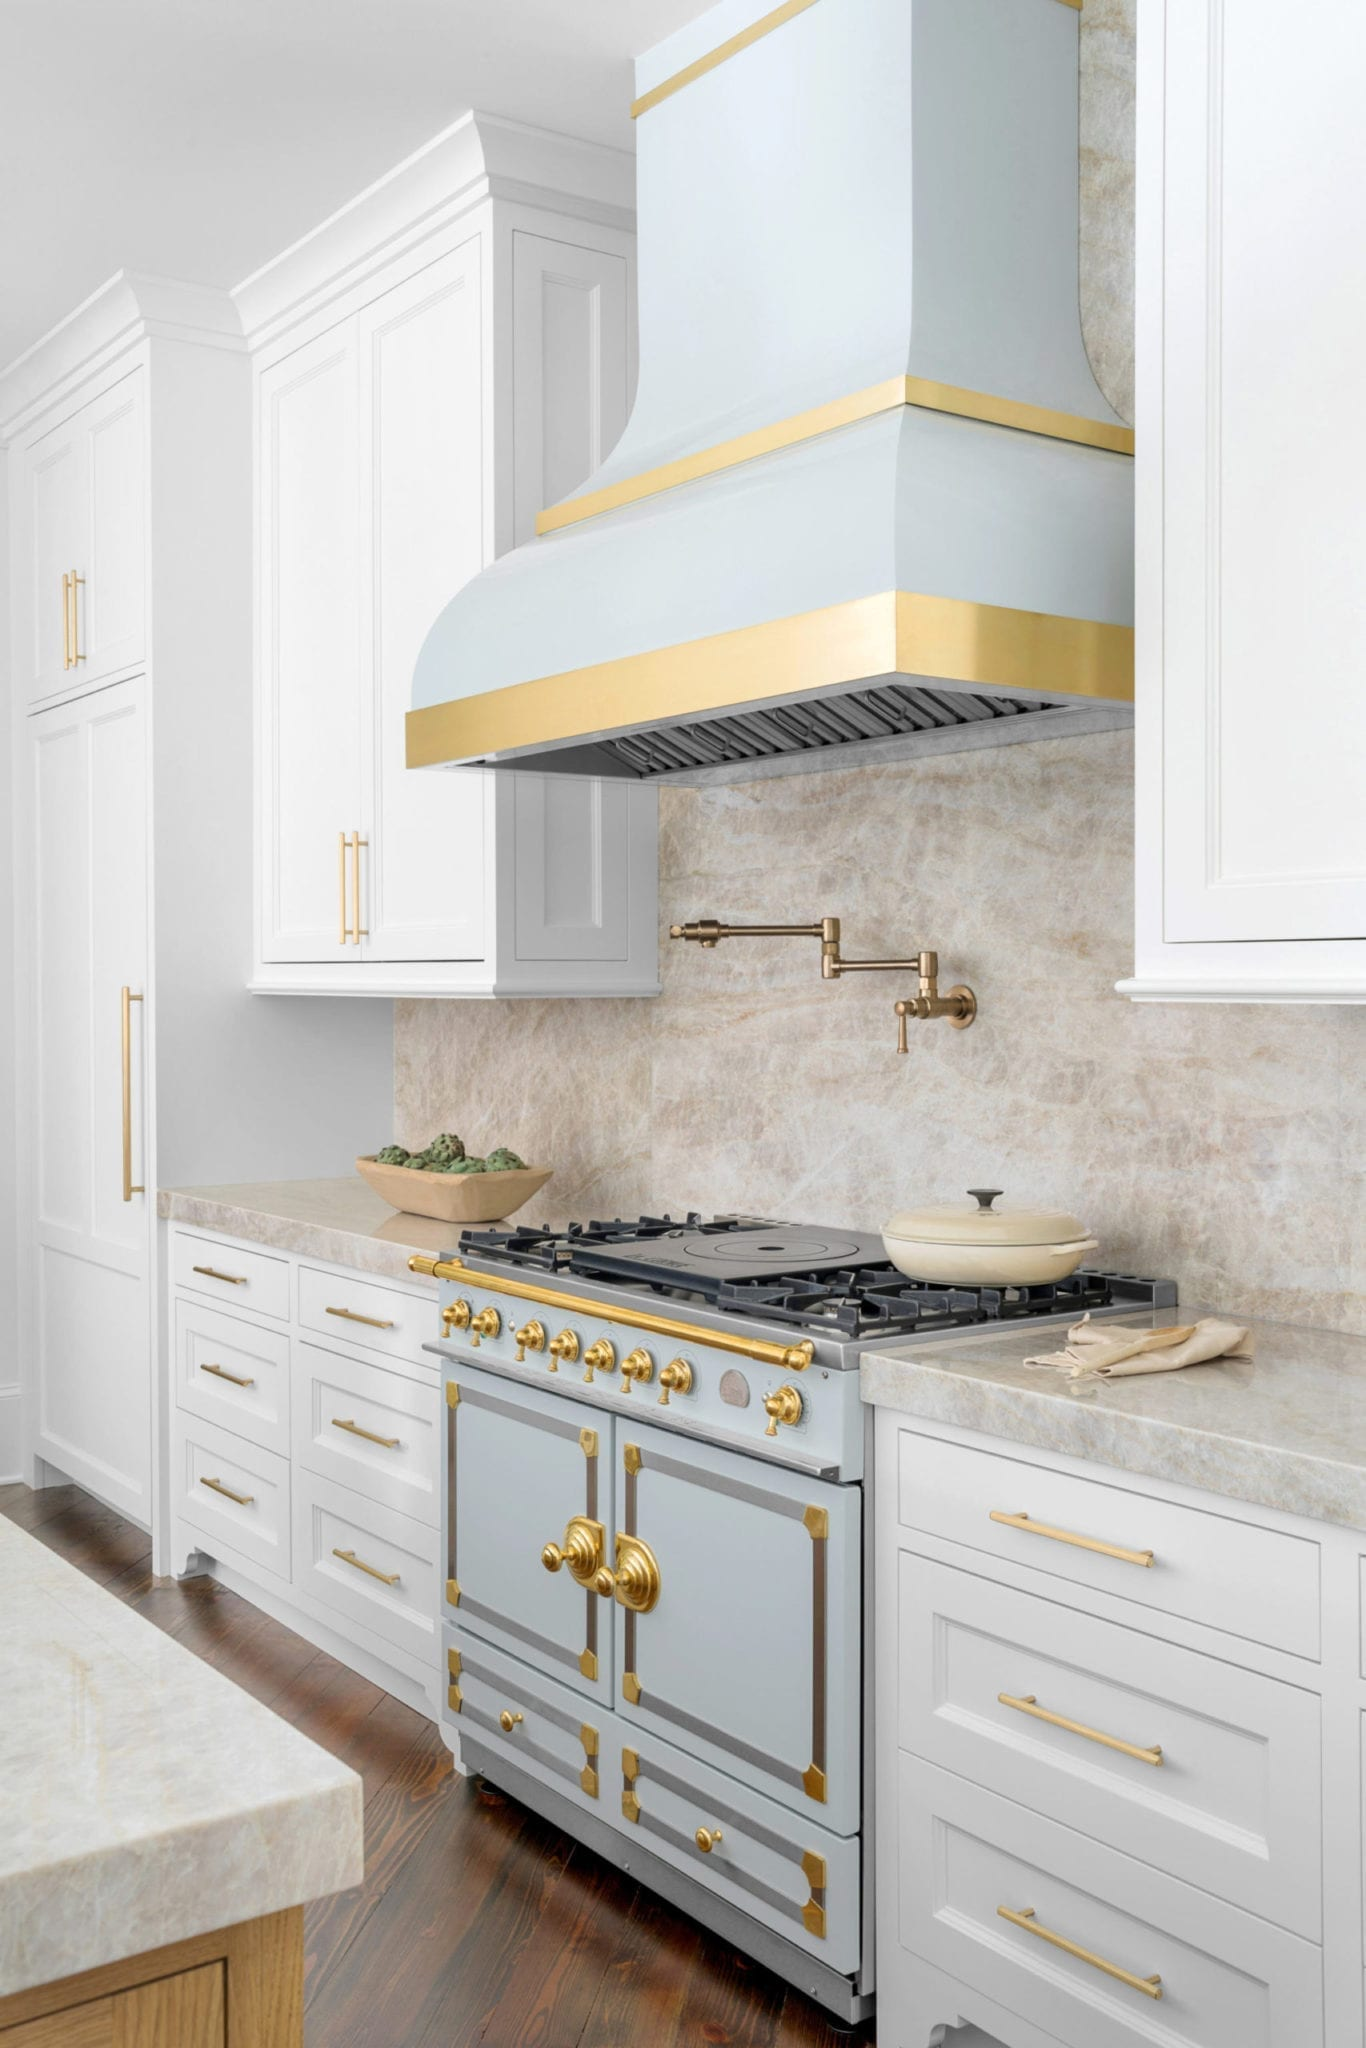 Blue LaCornue or LaCornue for Atlanta blogger Kelly Page, BlueGrayGals, kitchen. A Taj Majal countertop and full place keep the color simple but warm. A custom blue range hood was made with brass to work with the kitchen. White cabinets painted in Benjamin Moore White Dove create the pop of blue and white kitchen decor.